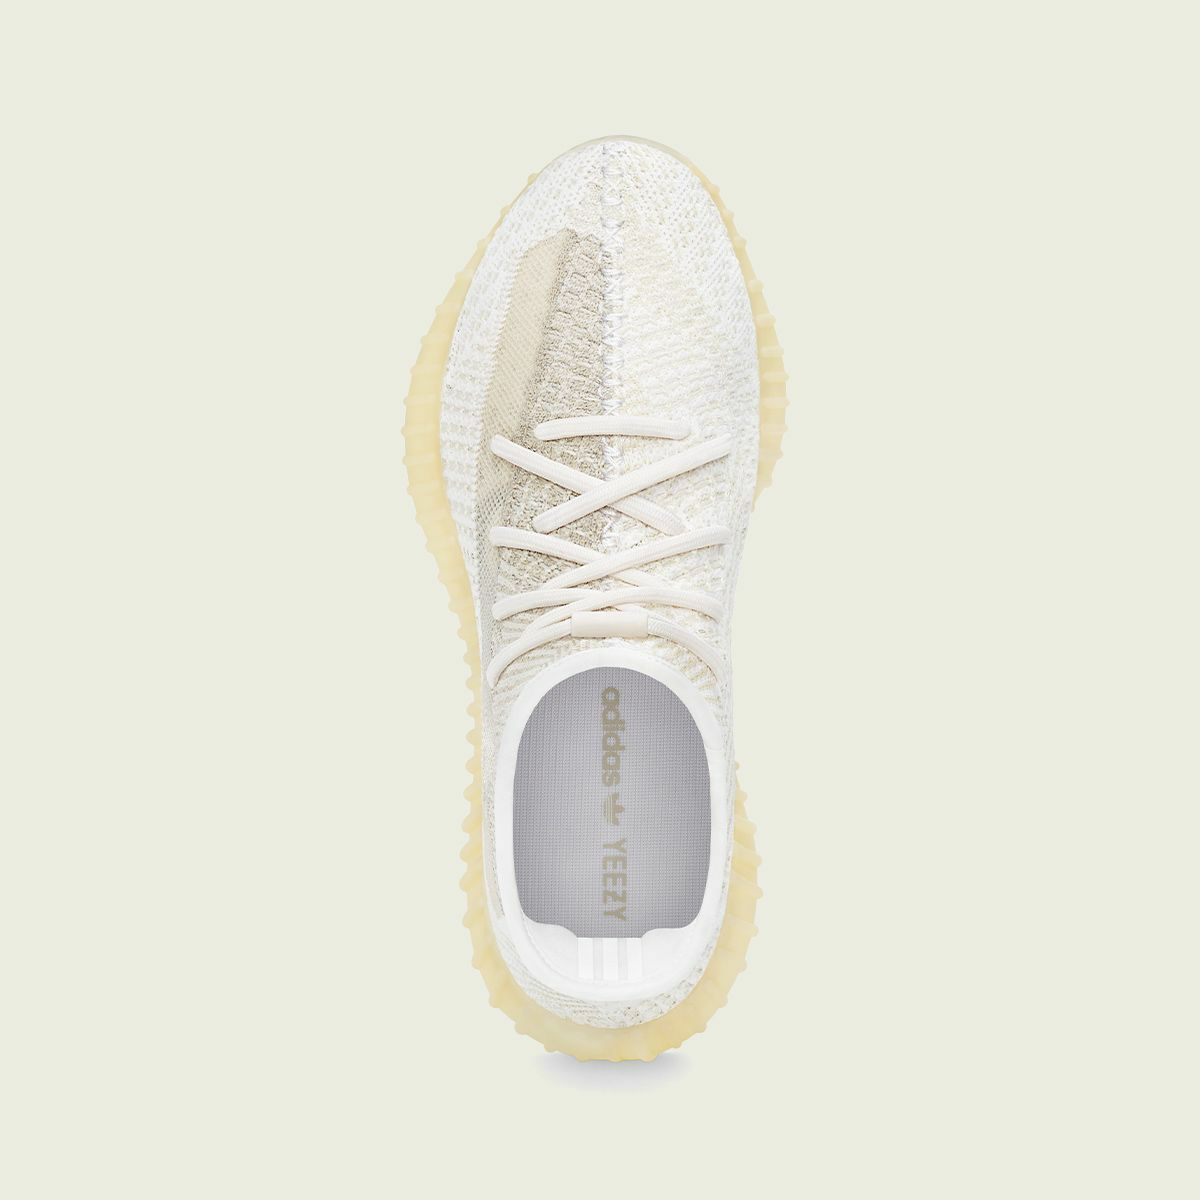 adidas-yeezy-boost-350-v2-natural-fz5246-release-20201024